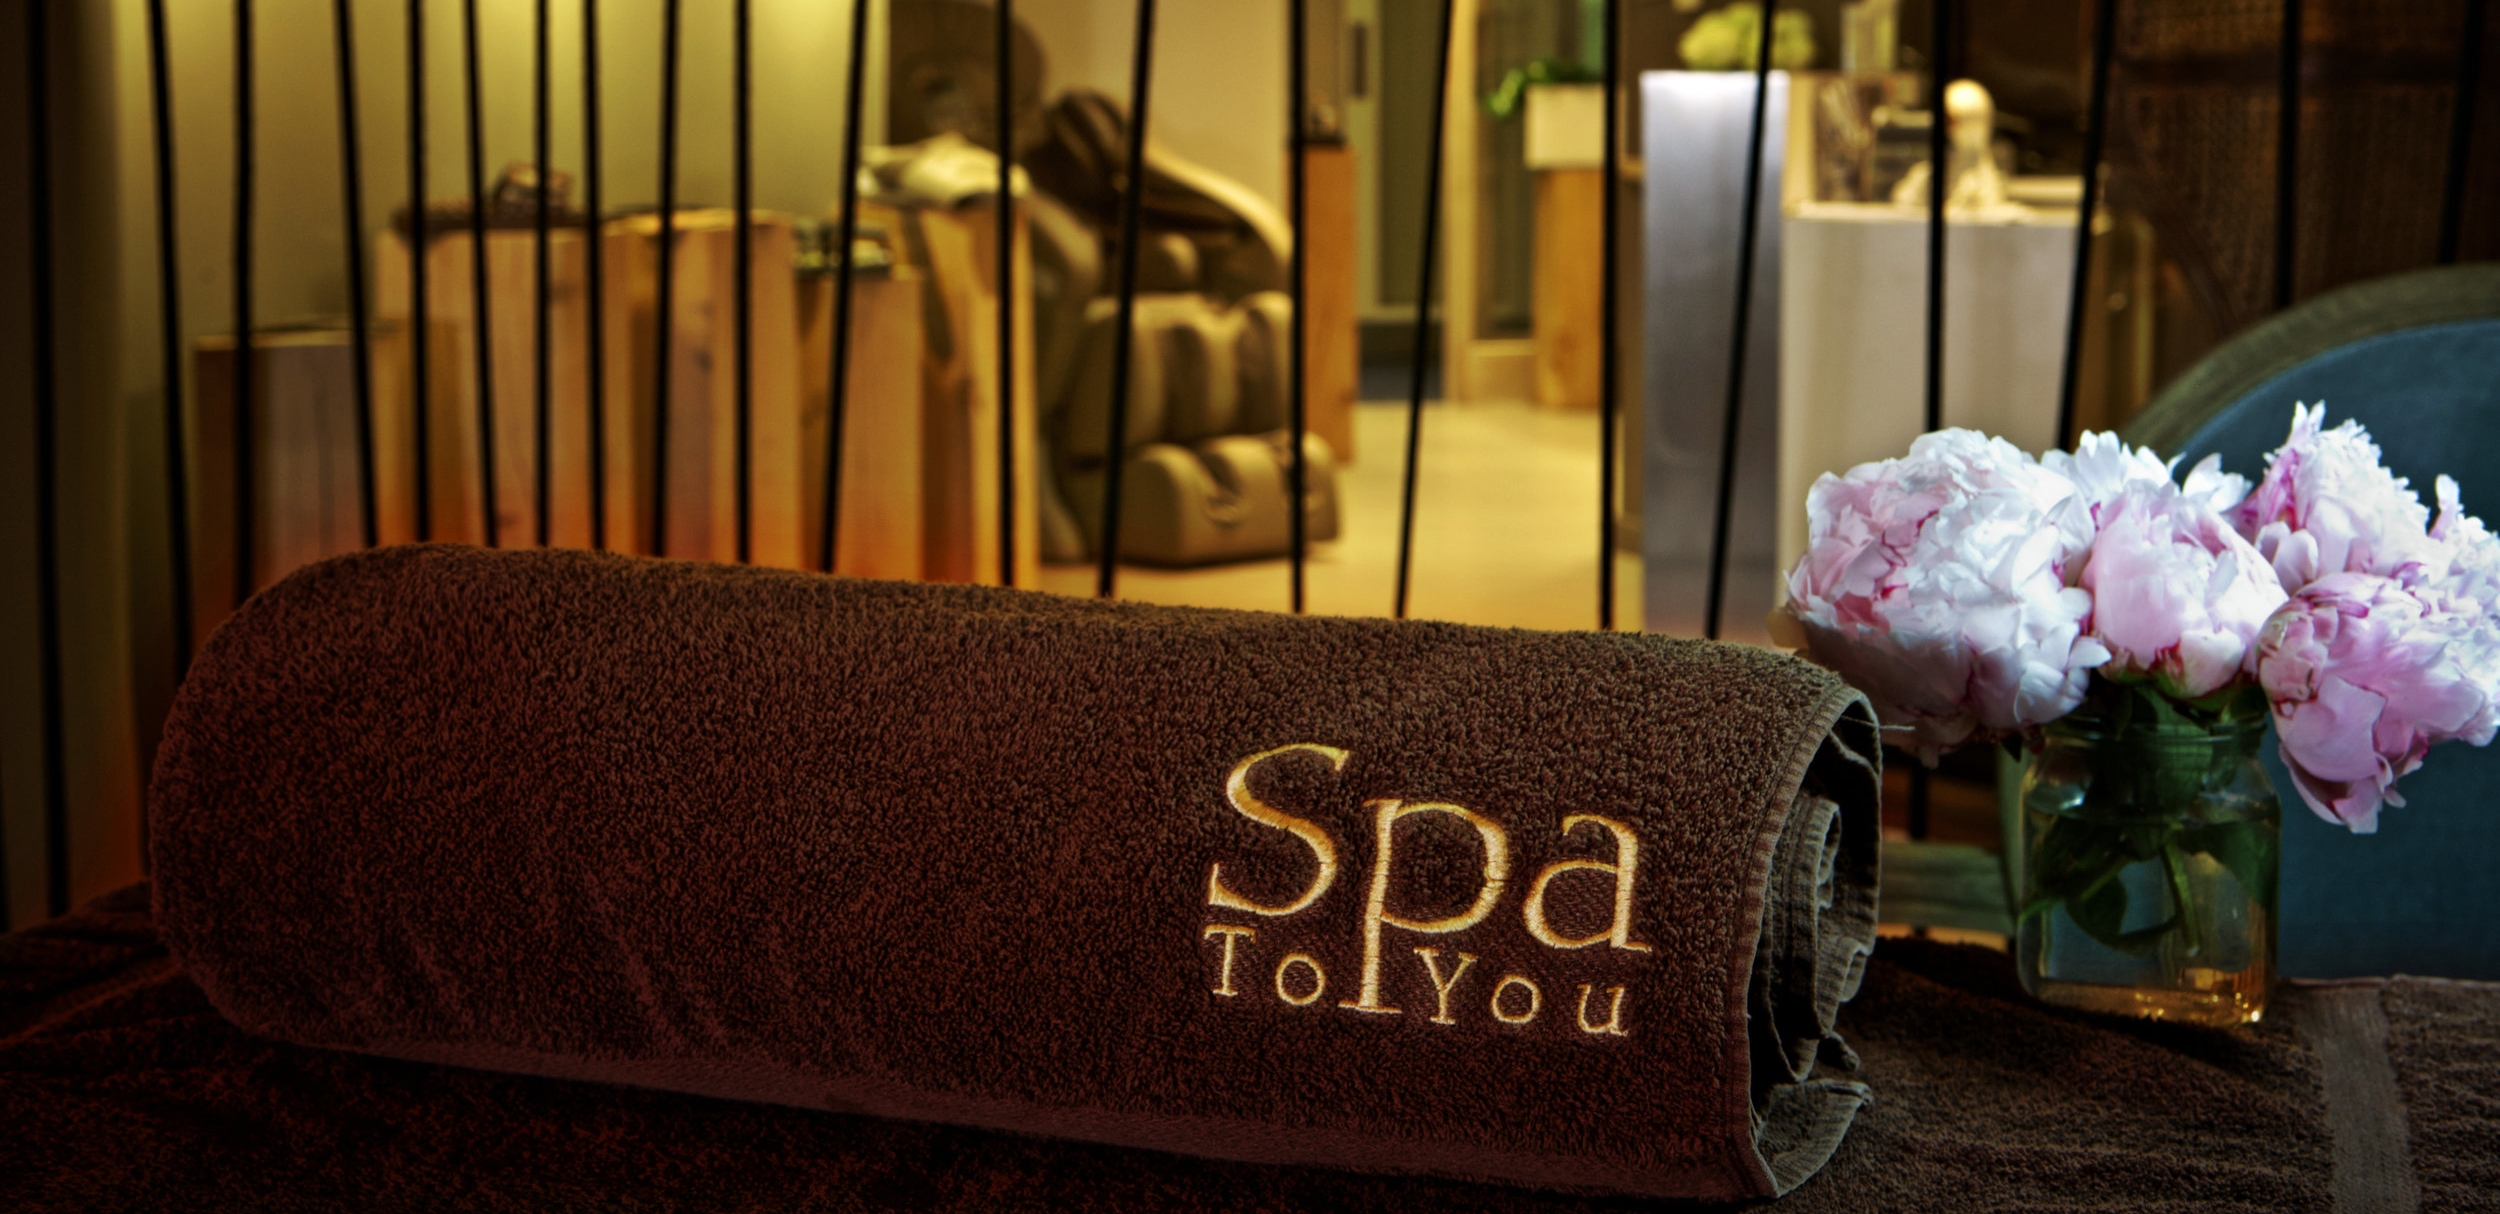 SPA-TO-YOU-HILTON_194.jpg